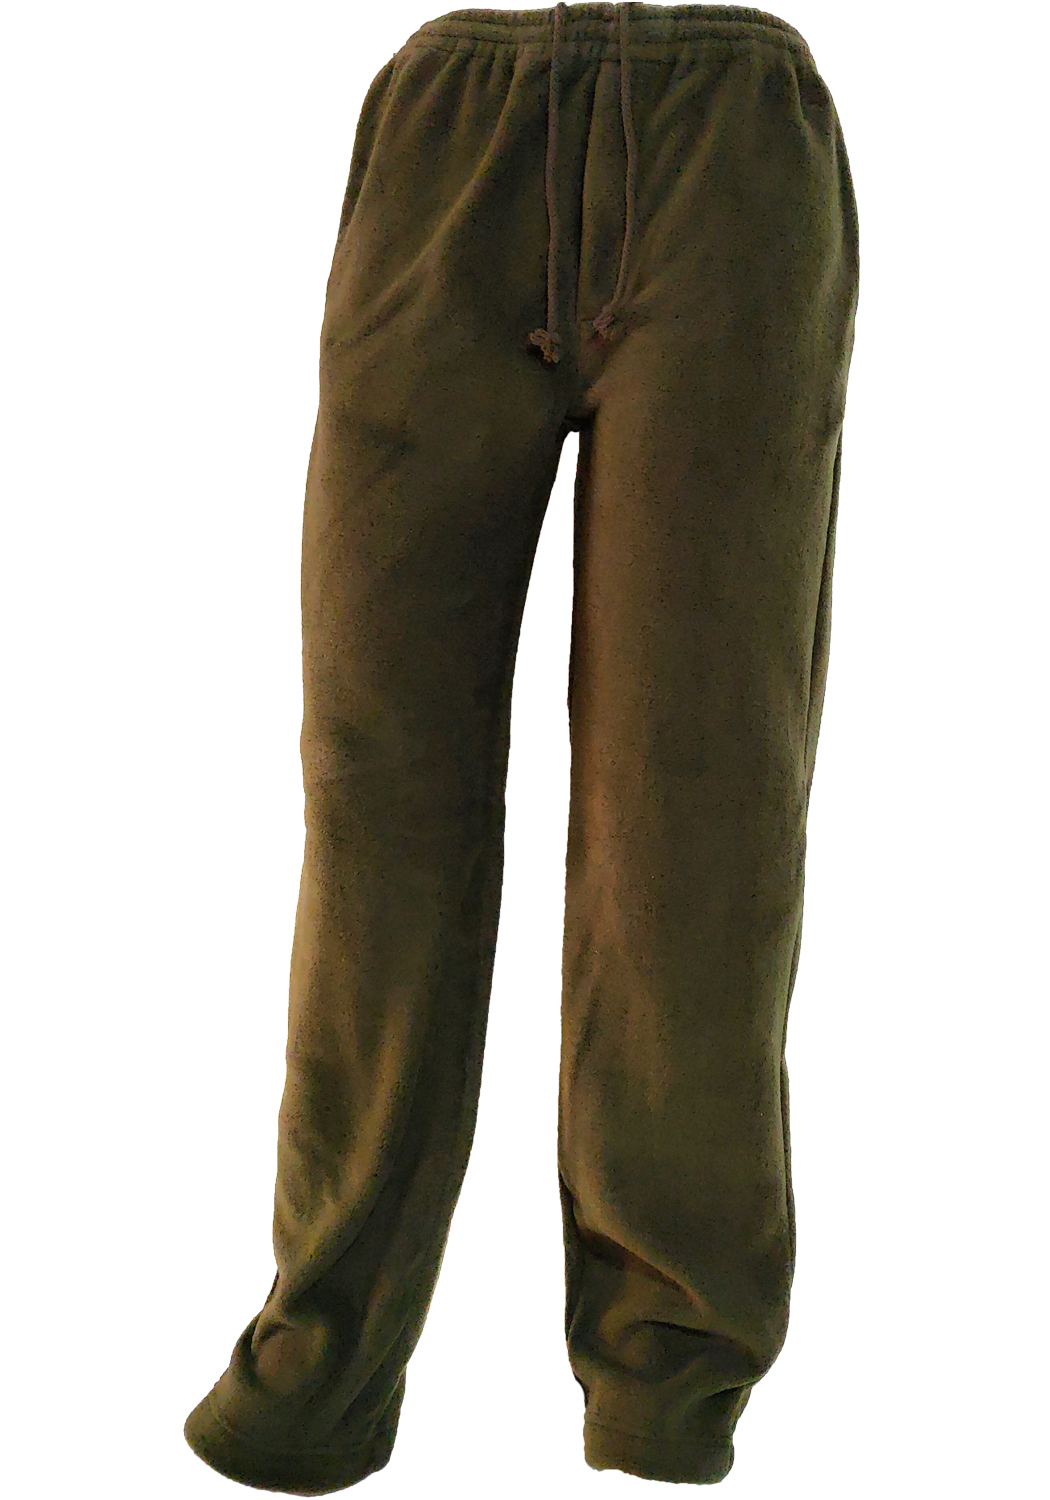 Pants fleece sport hunting comfortable warm lacing with adjustable pants